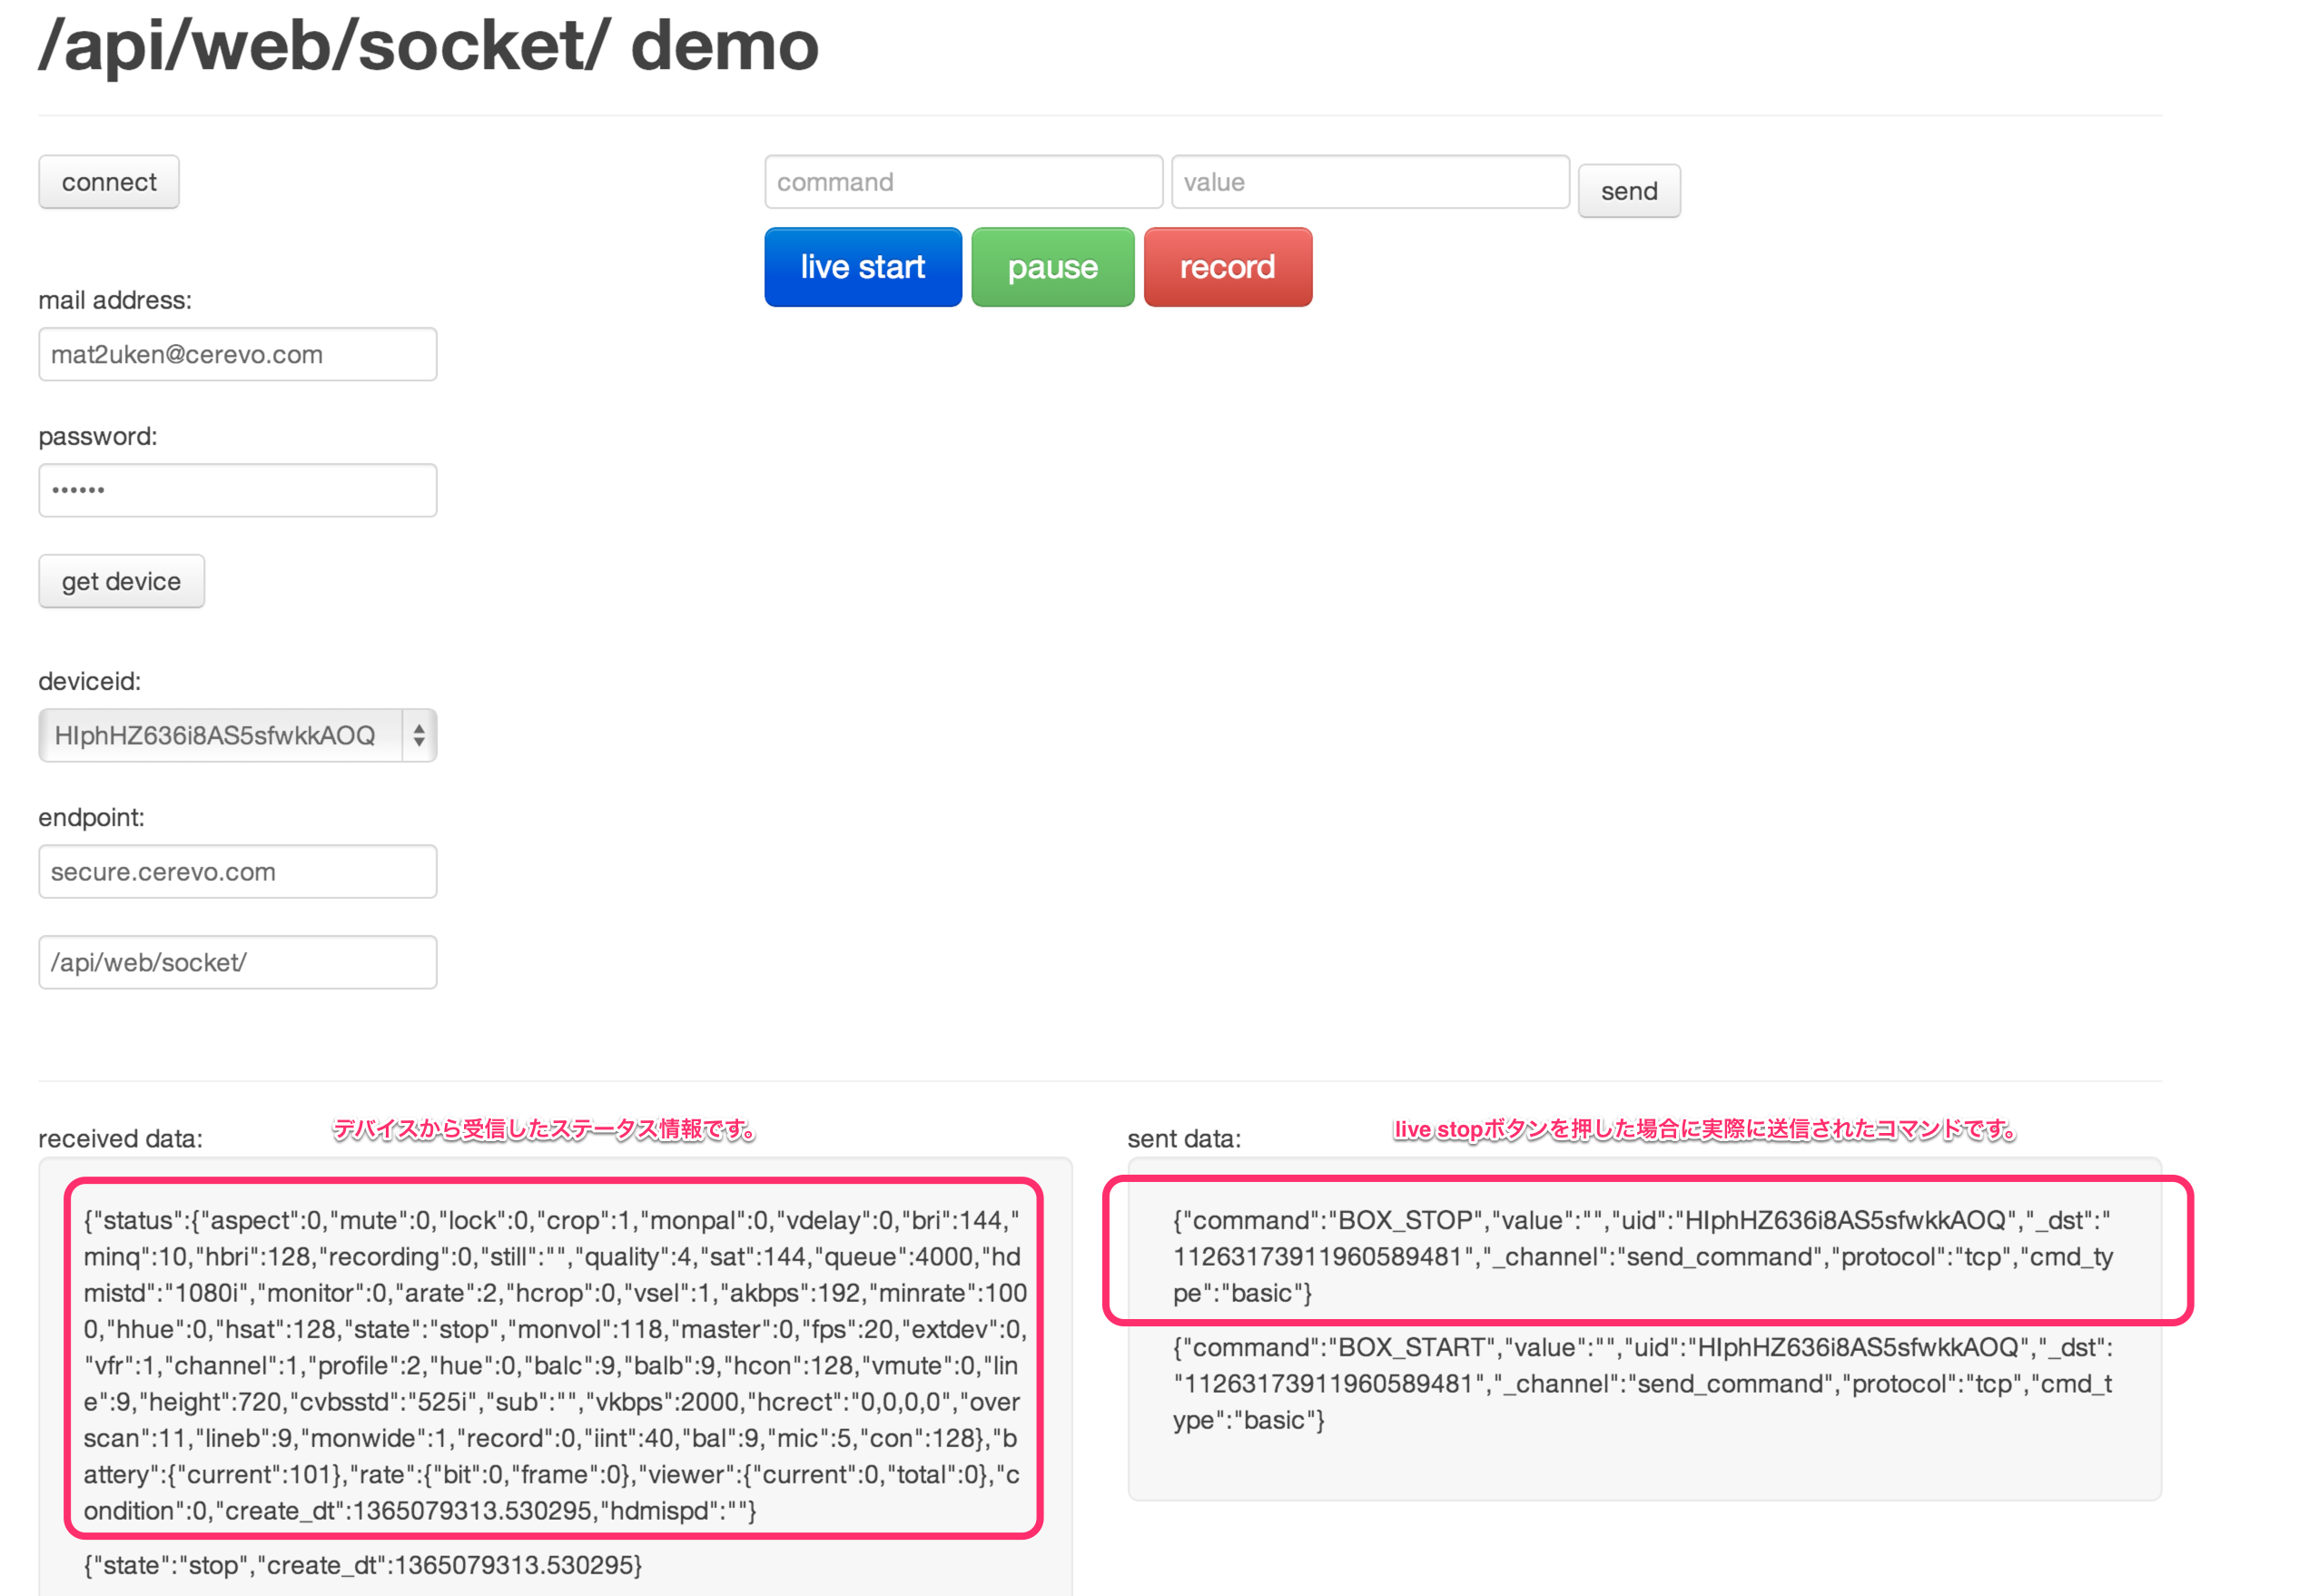 websocket_demo4